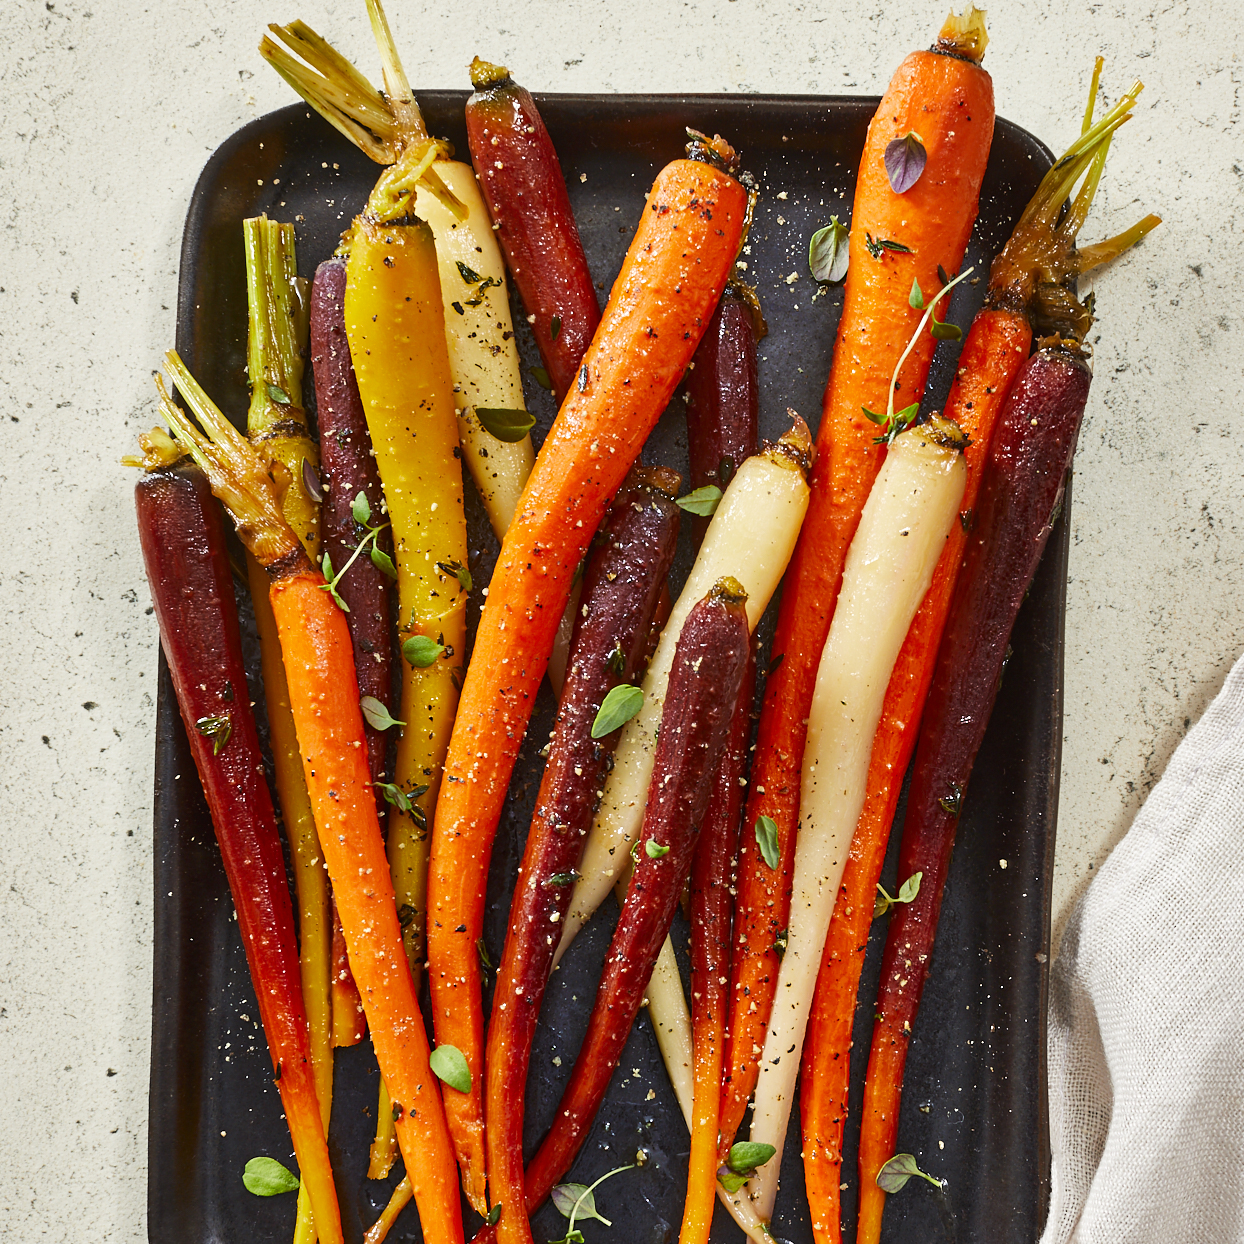 Bright and fresh, these candied carrots have just a hint of sweetness from the honey and citrus. This one-pan dish is quick and easy to make, but also has such a pretty presentation that it works both as an entertaining-worthy or weeknight side dish. Look for carrots that are similar in size so they cook evenly. Source: EatingWell.com, October 2019